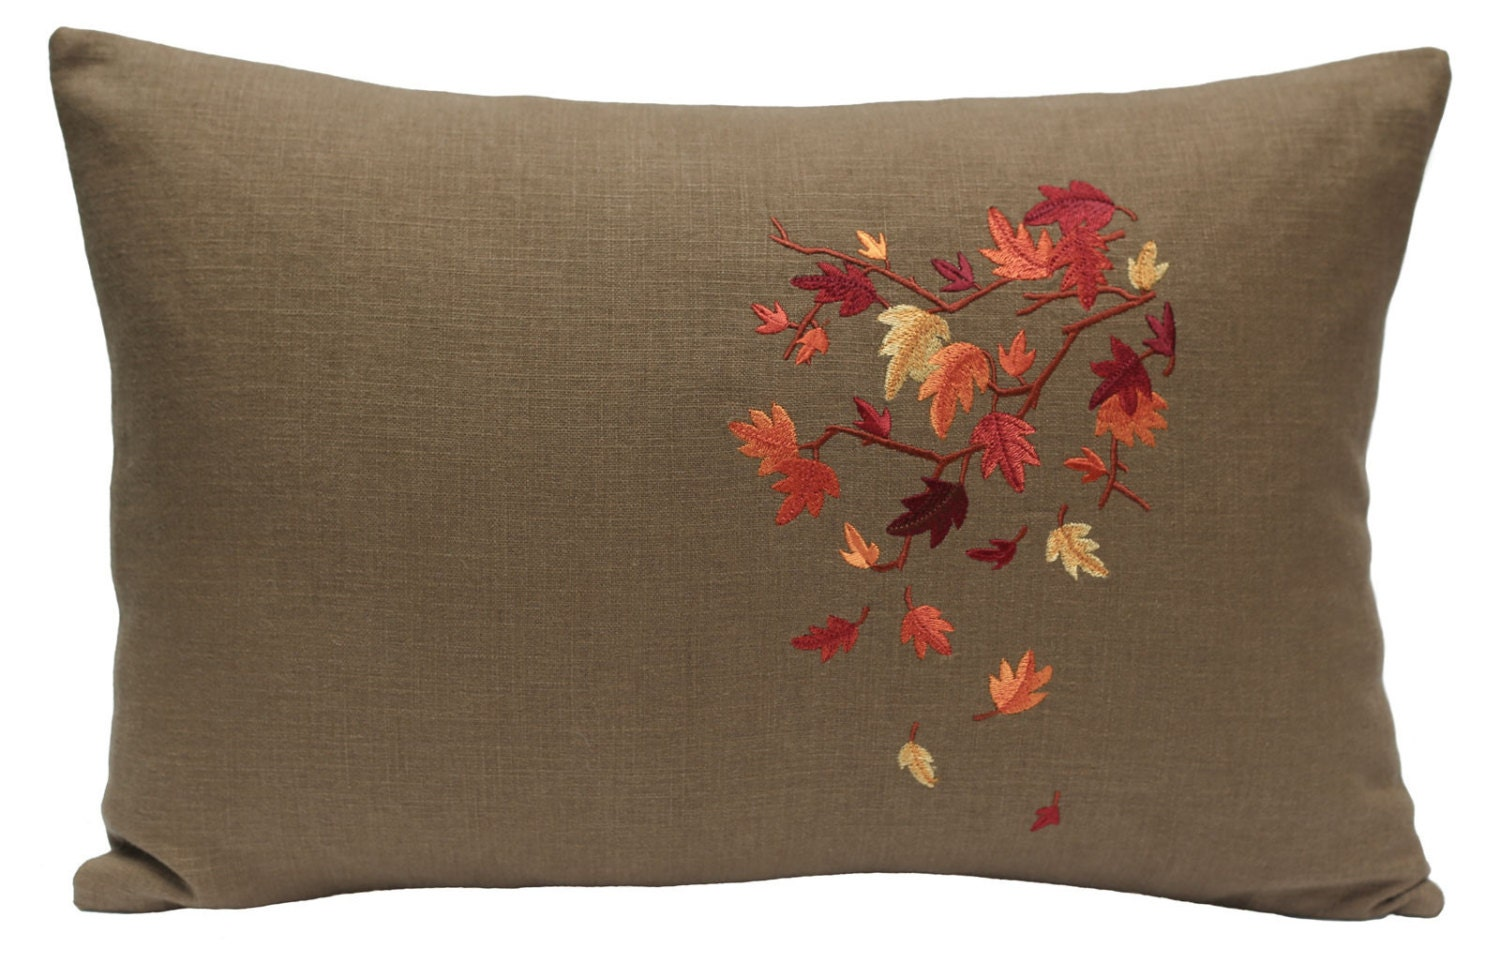 Embroidered foliage pillow leaf tree branch autumn